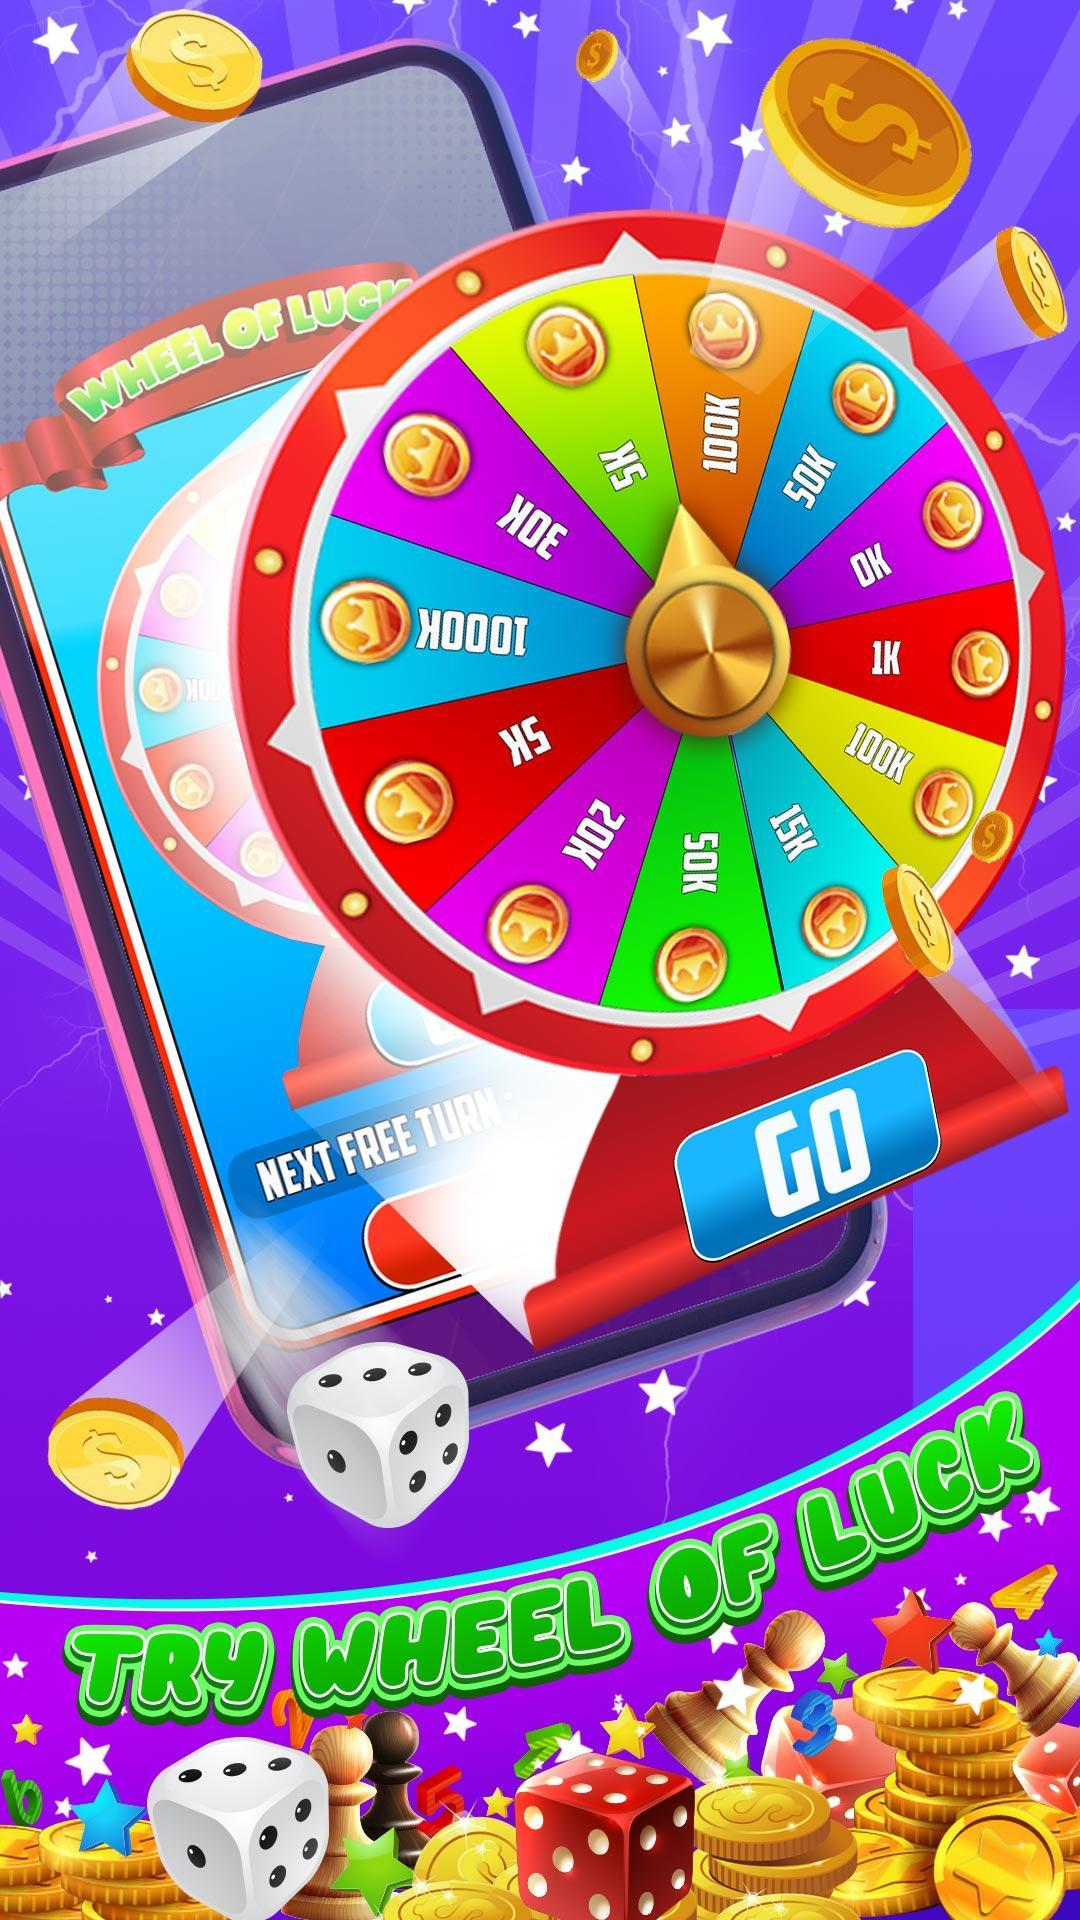 King of Ludo Dice Game with Free Voice Chat 2020 1.5.2 Screenshot 10